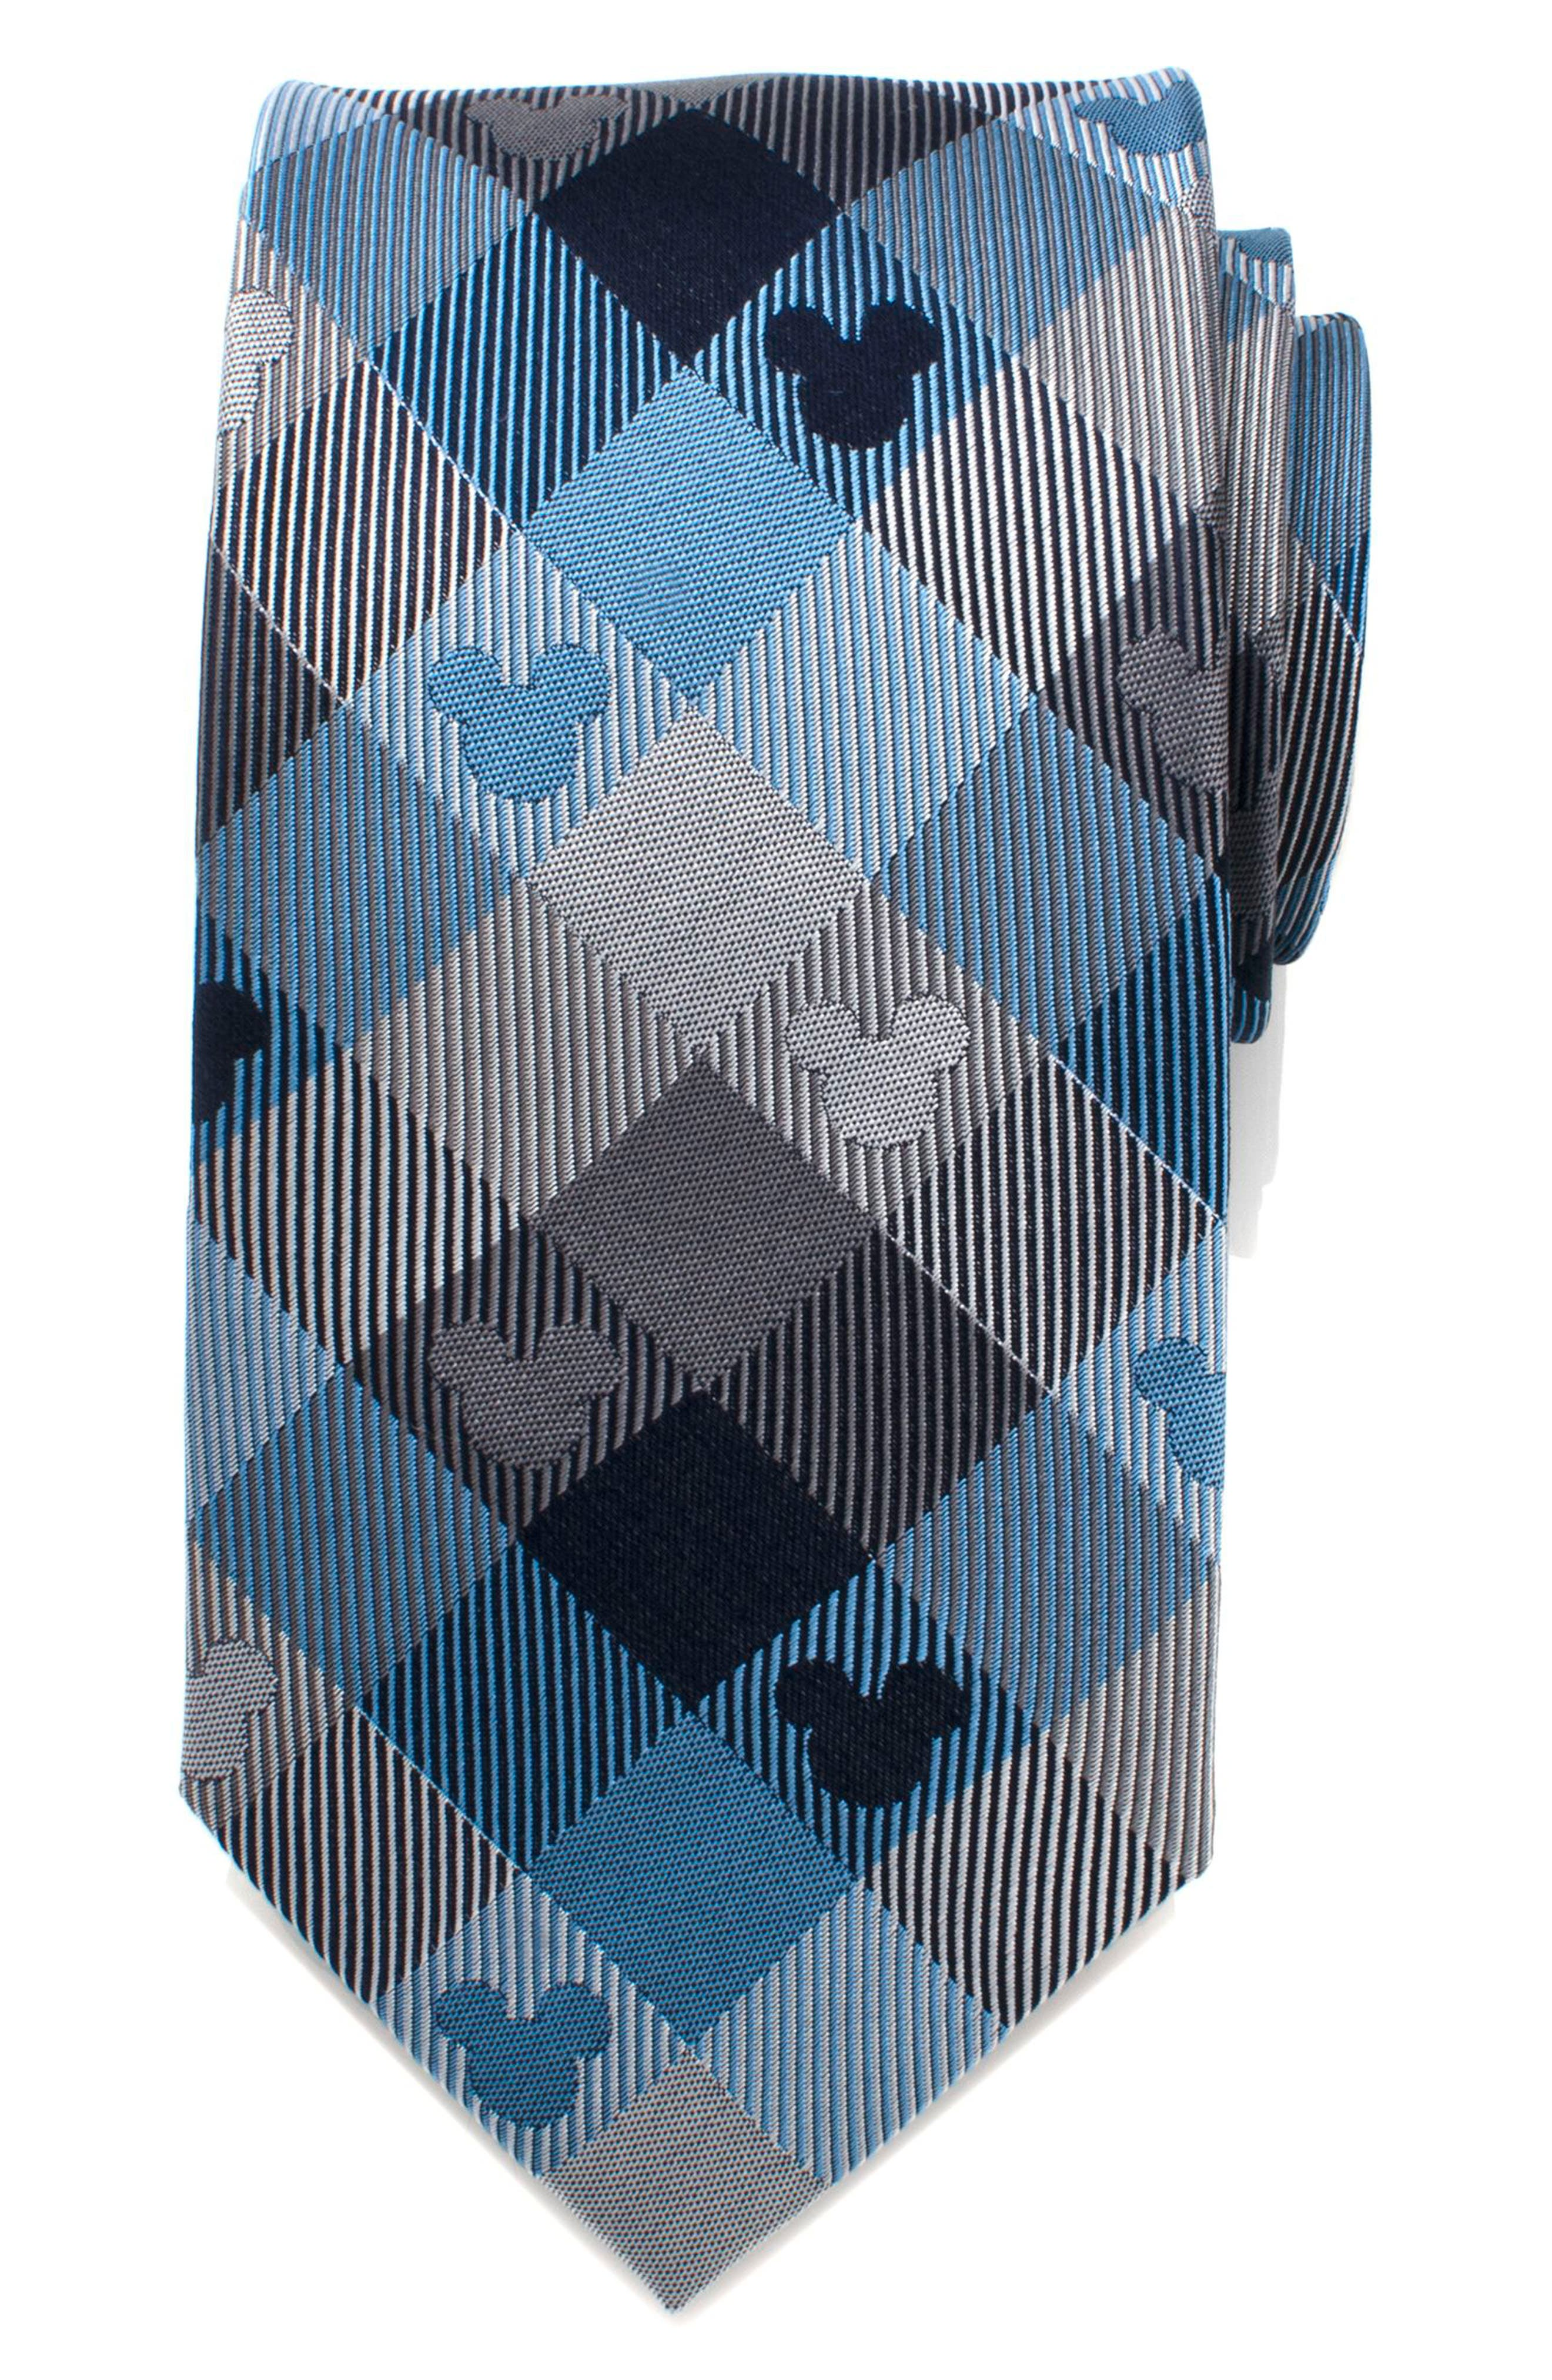 Mickey Mouse Plaid Silk Tie,                             Main thumbnail 1, color,                             BLUE/ GREY